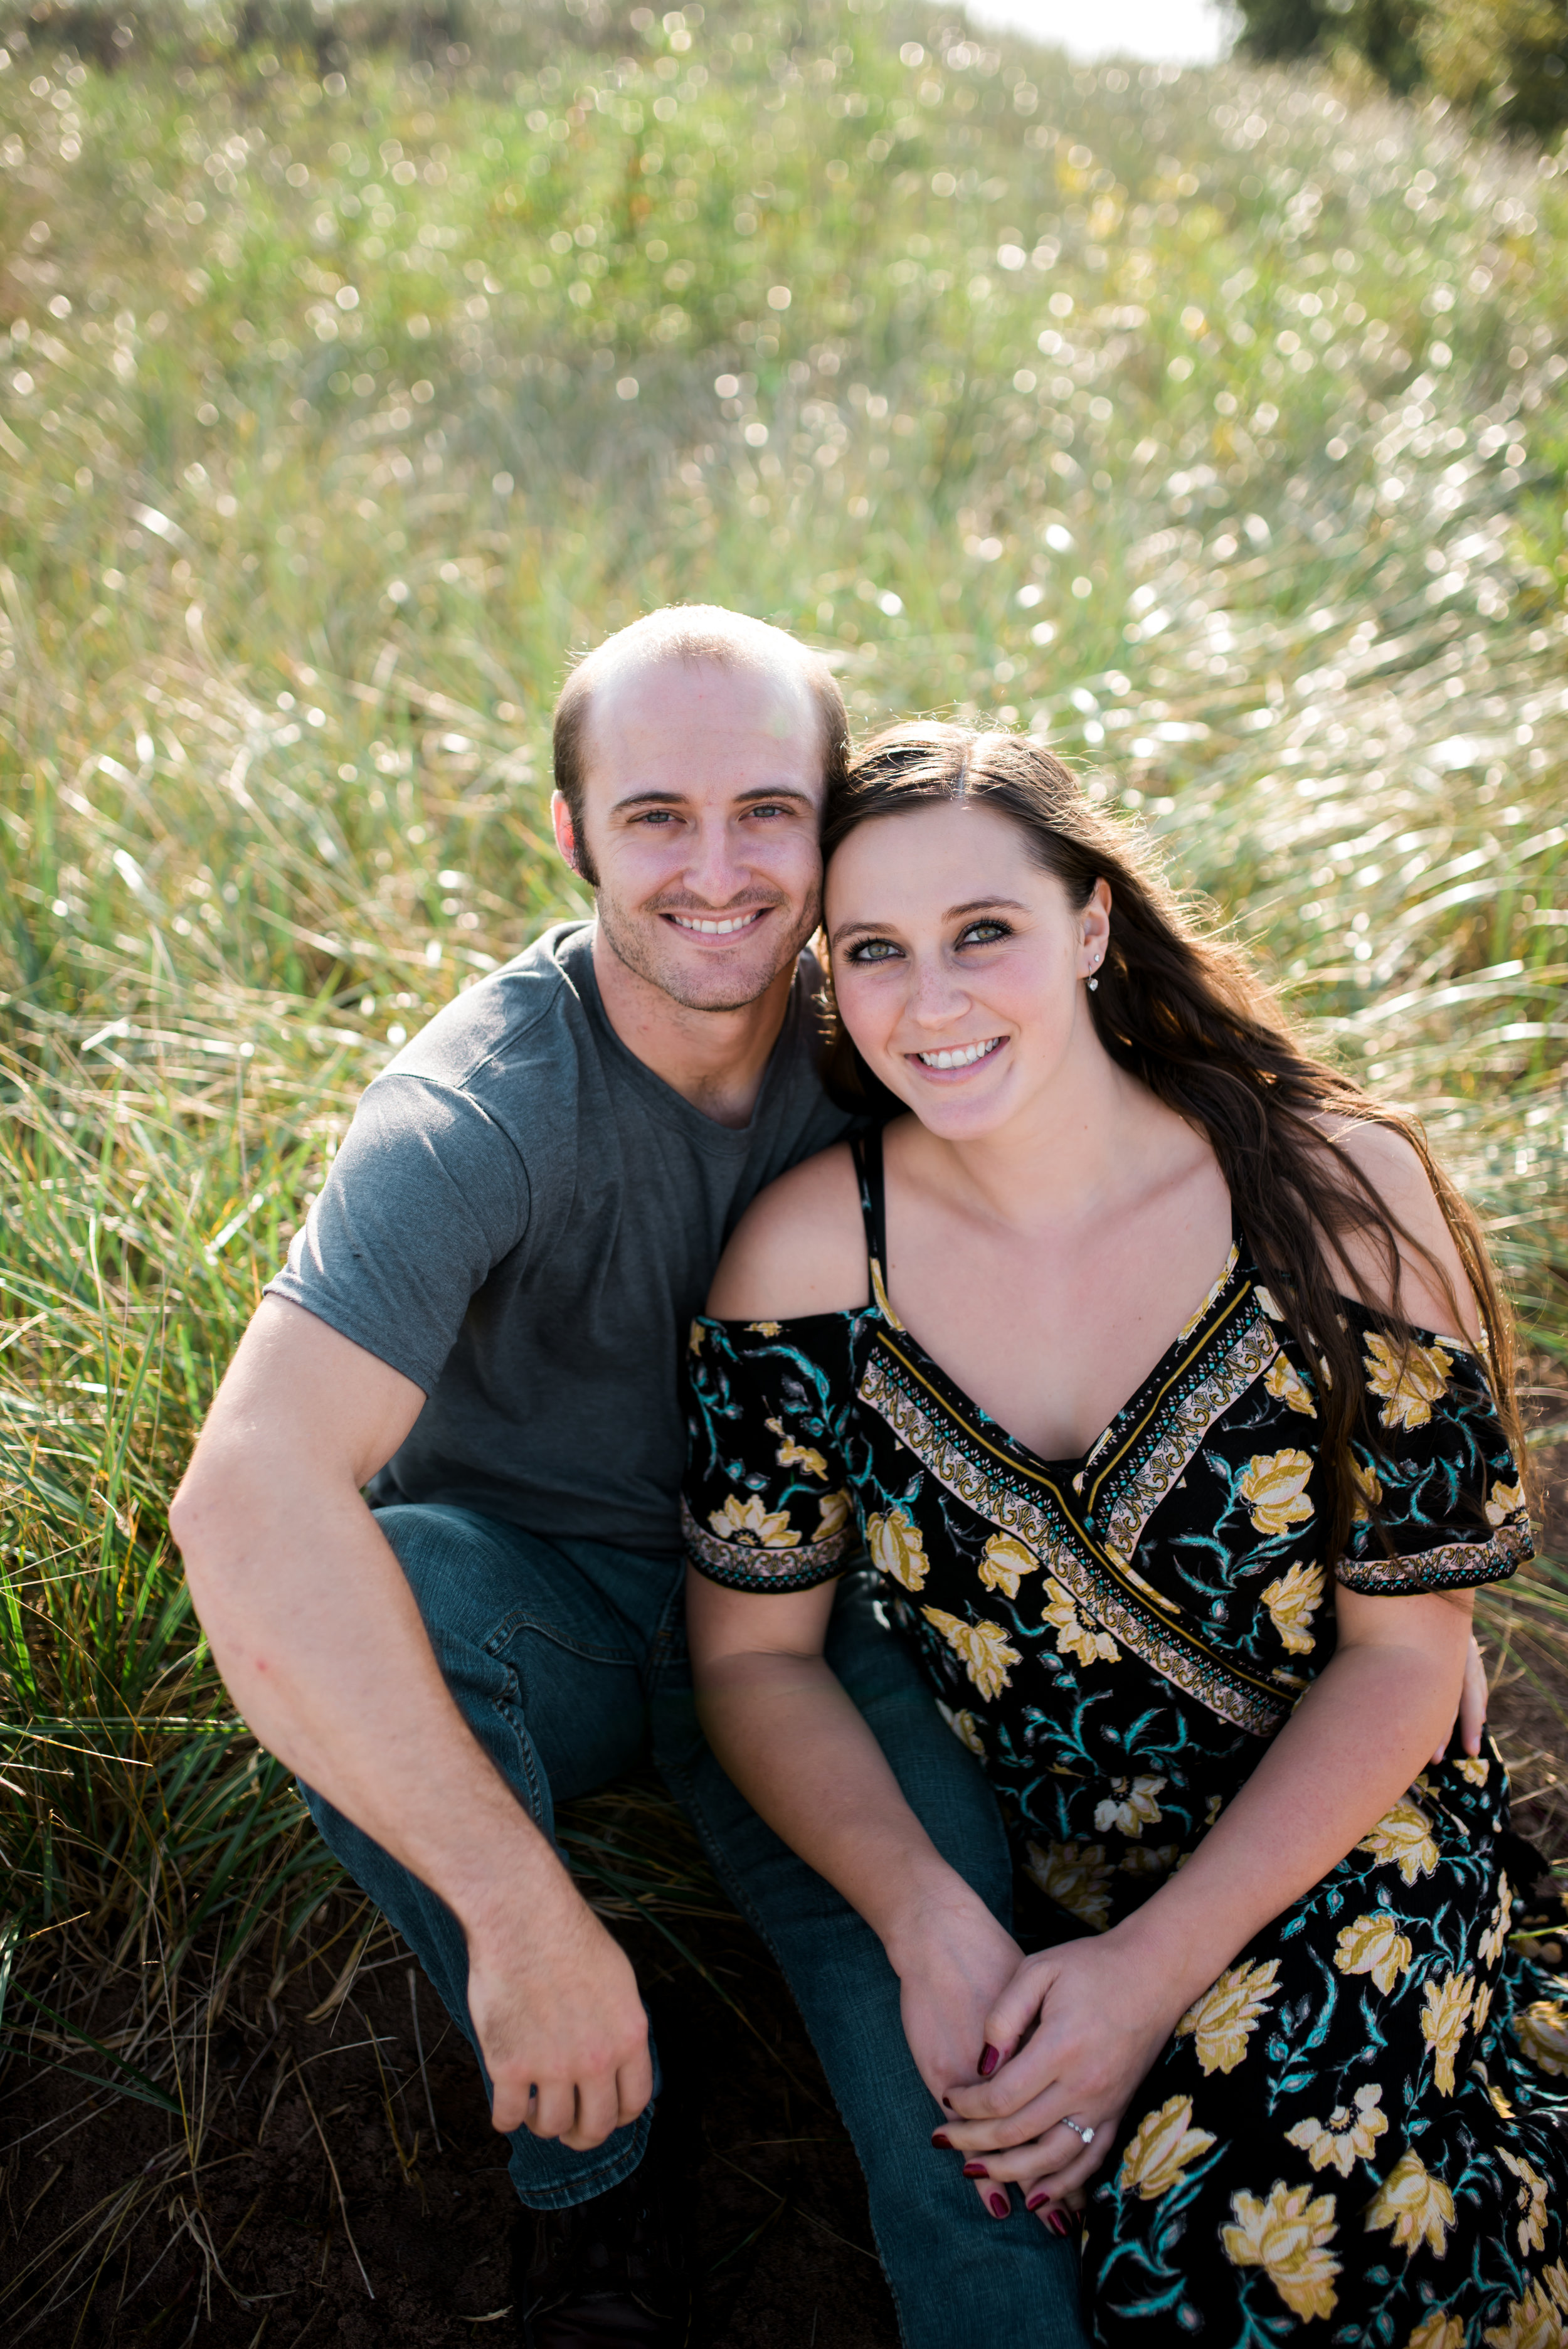 """Cory + Marlo  """"Shawna is fantastic! My fiance and I are so happy with our engagement photos! We came all the way from Colorado to take them in Duluth and Shawna was very open to our ideas and willing to work with us!  Thanks so much, Shawna!"""